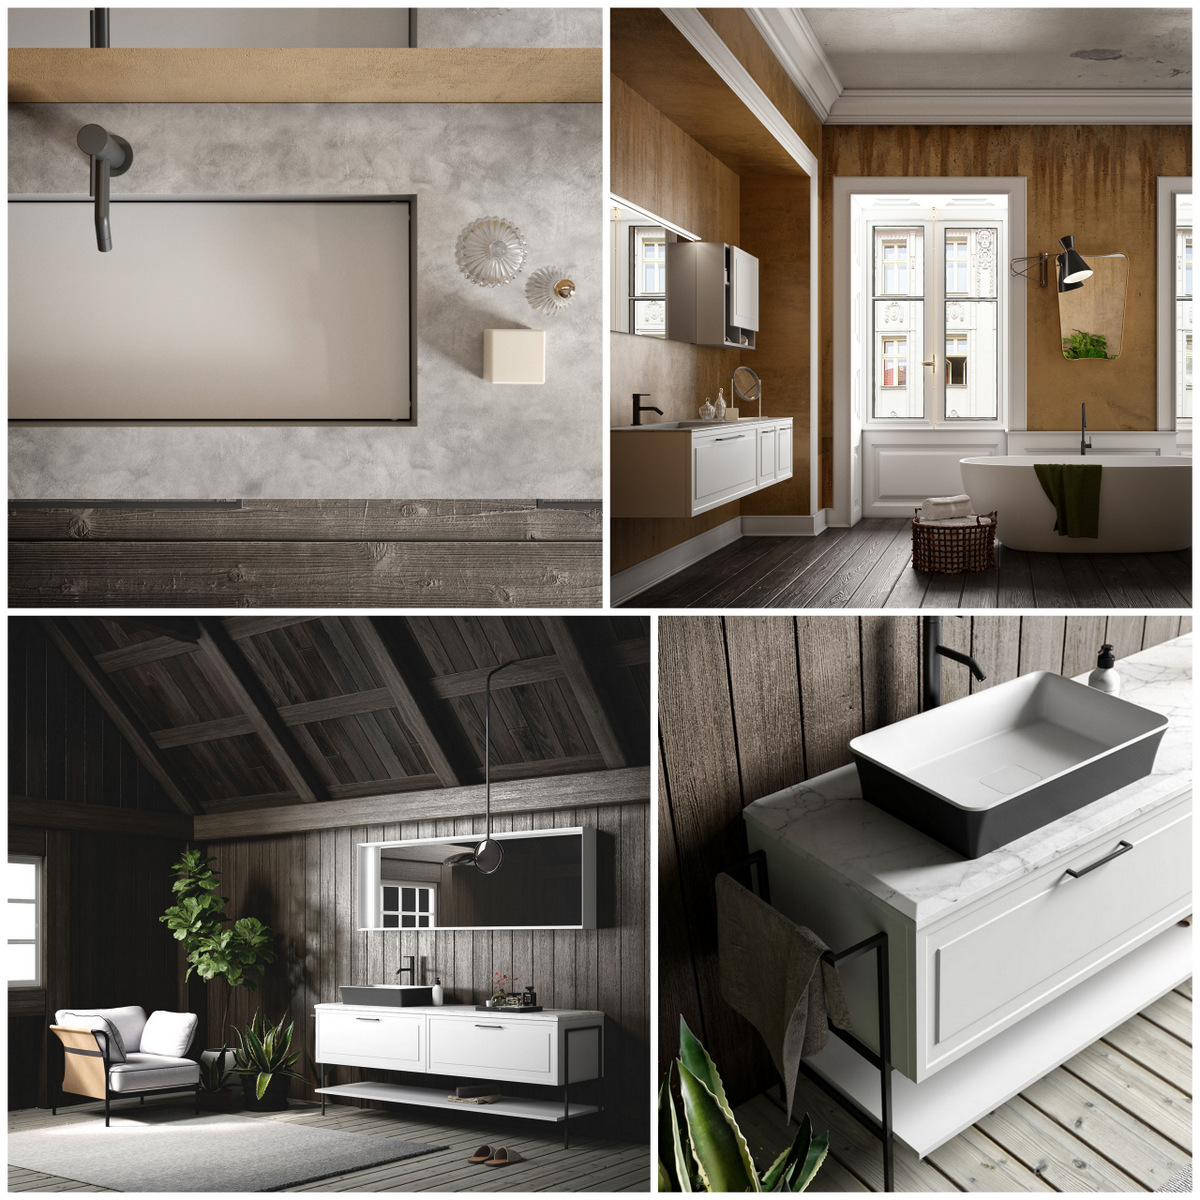 first pictures of the new puntotre's bathroom furniture - puntotre ... - Arredo Bagno Puntotre